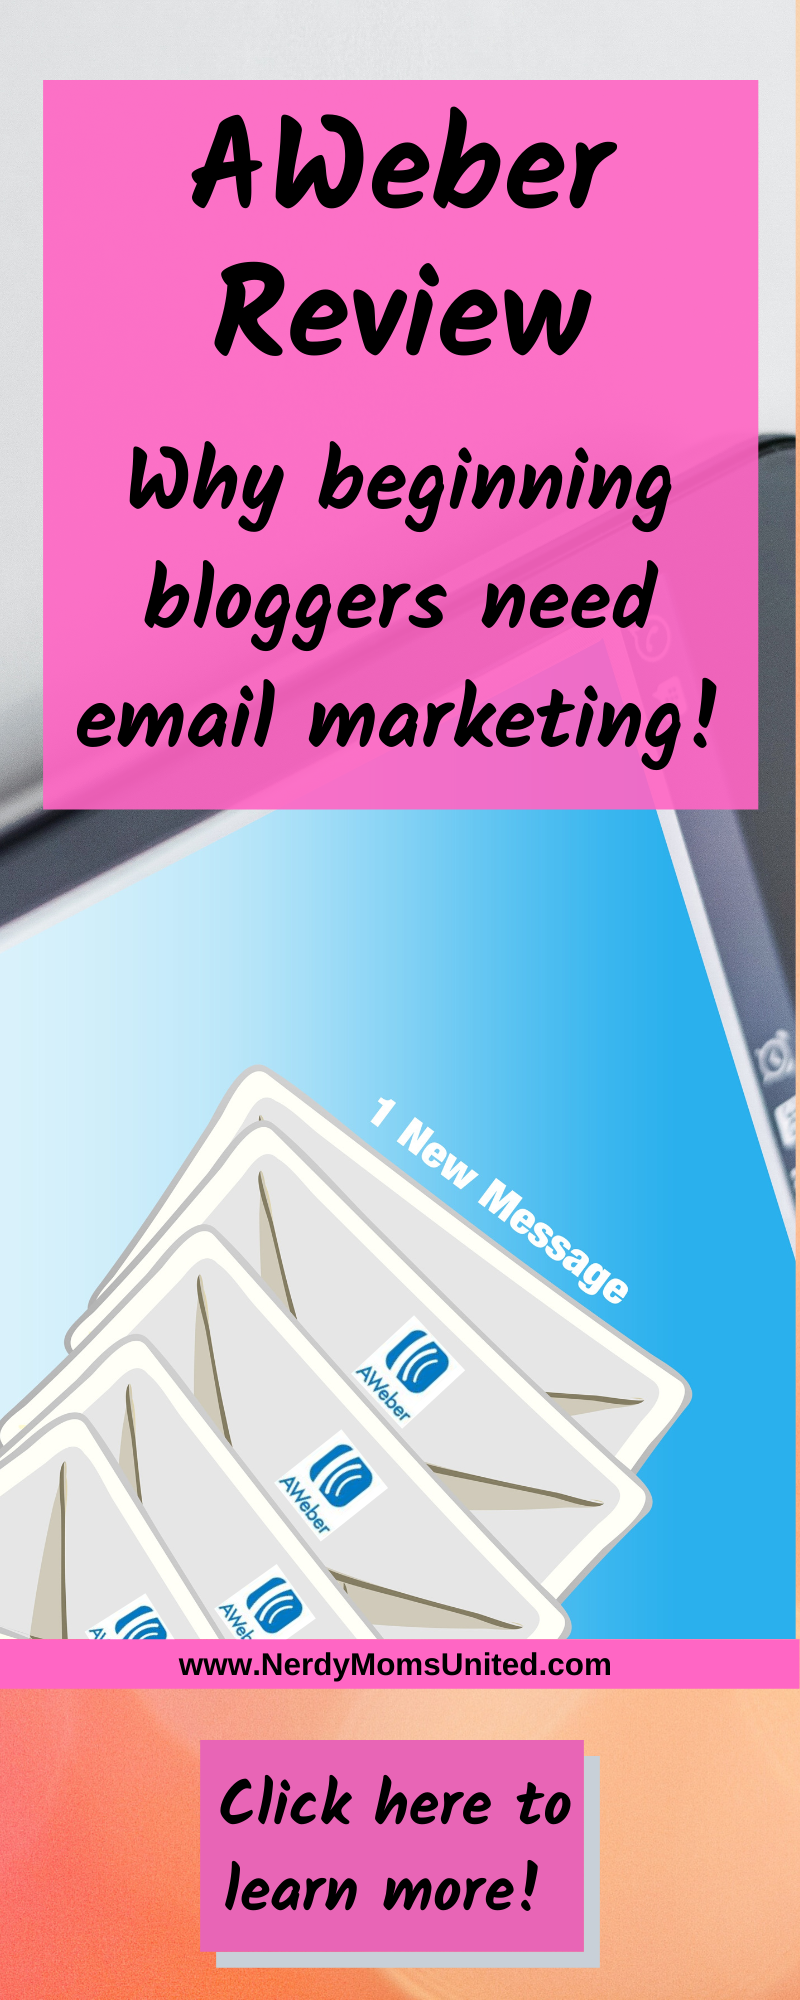 Buy Email Marketing Aweber Promotional Code 2020